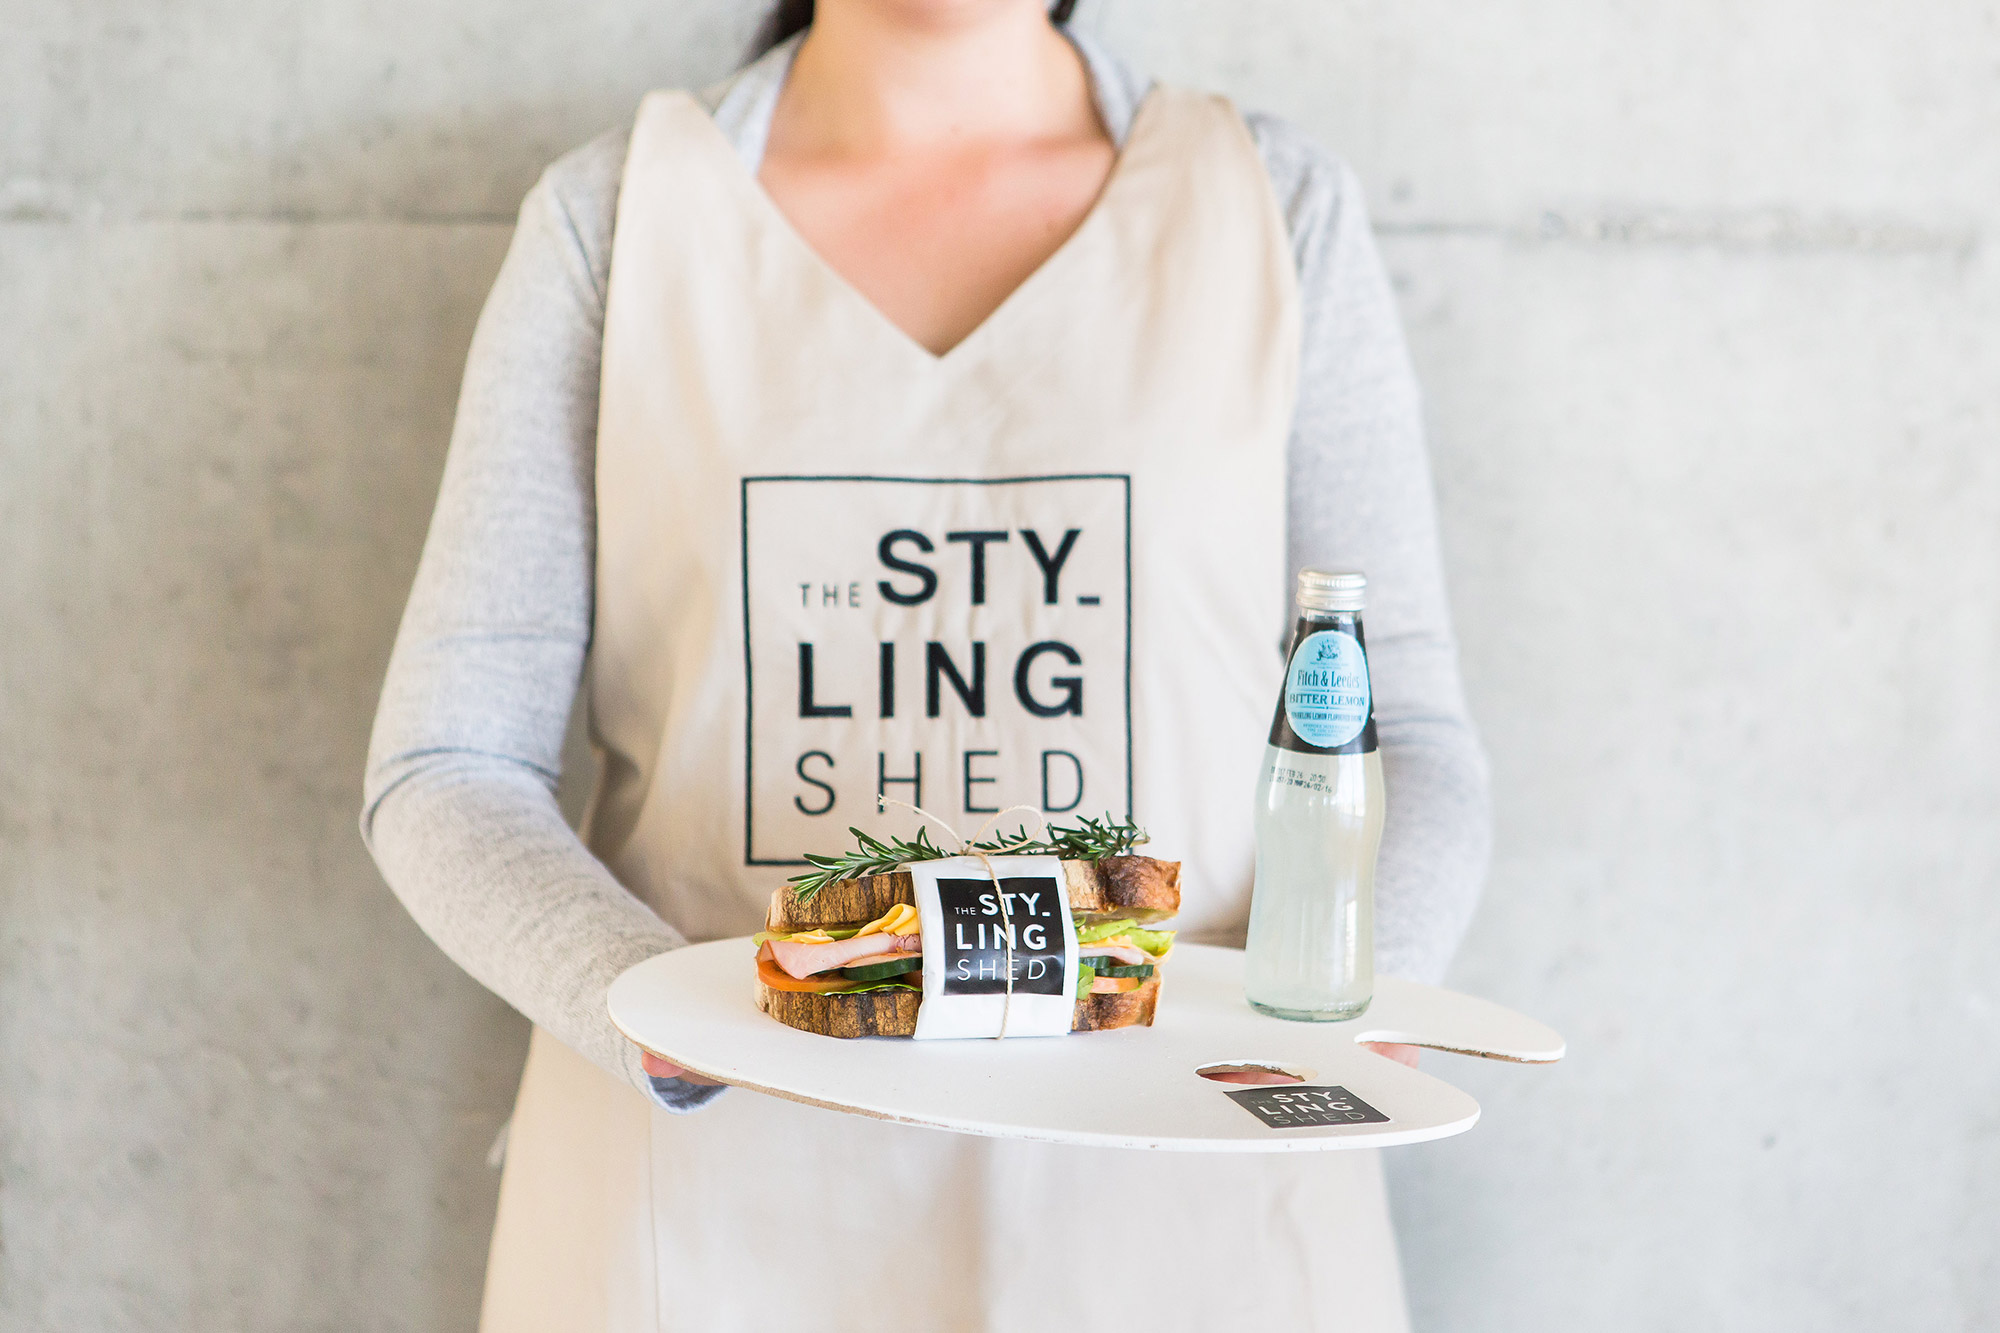 The Styling Shed / Branding